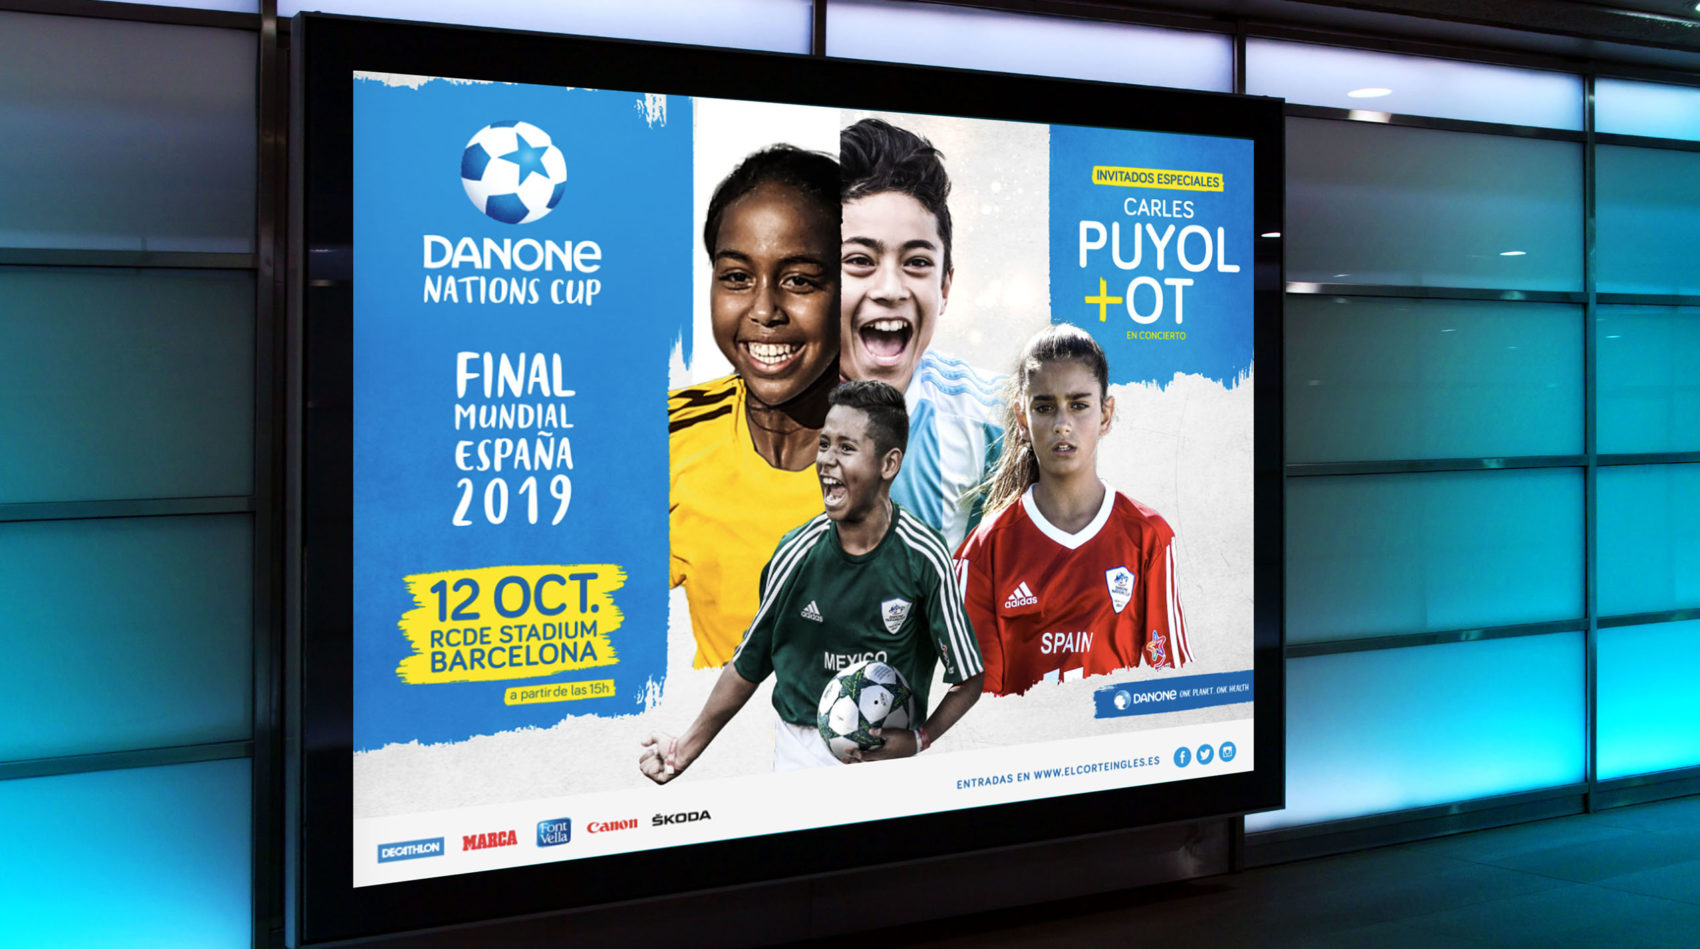 Projet_project_Danone_Nations_Cup_edition_2019_campagne_campaign_communication_globale_global_affichage_advertising_print_social_media_change_the_game